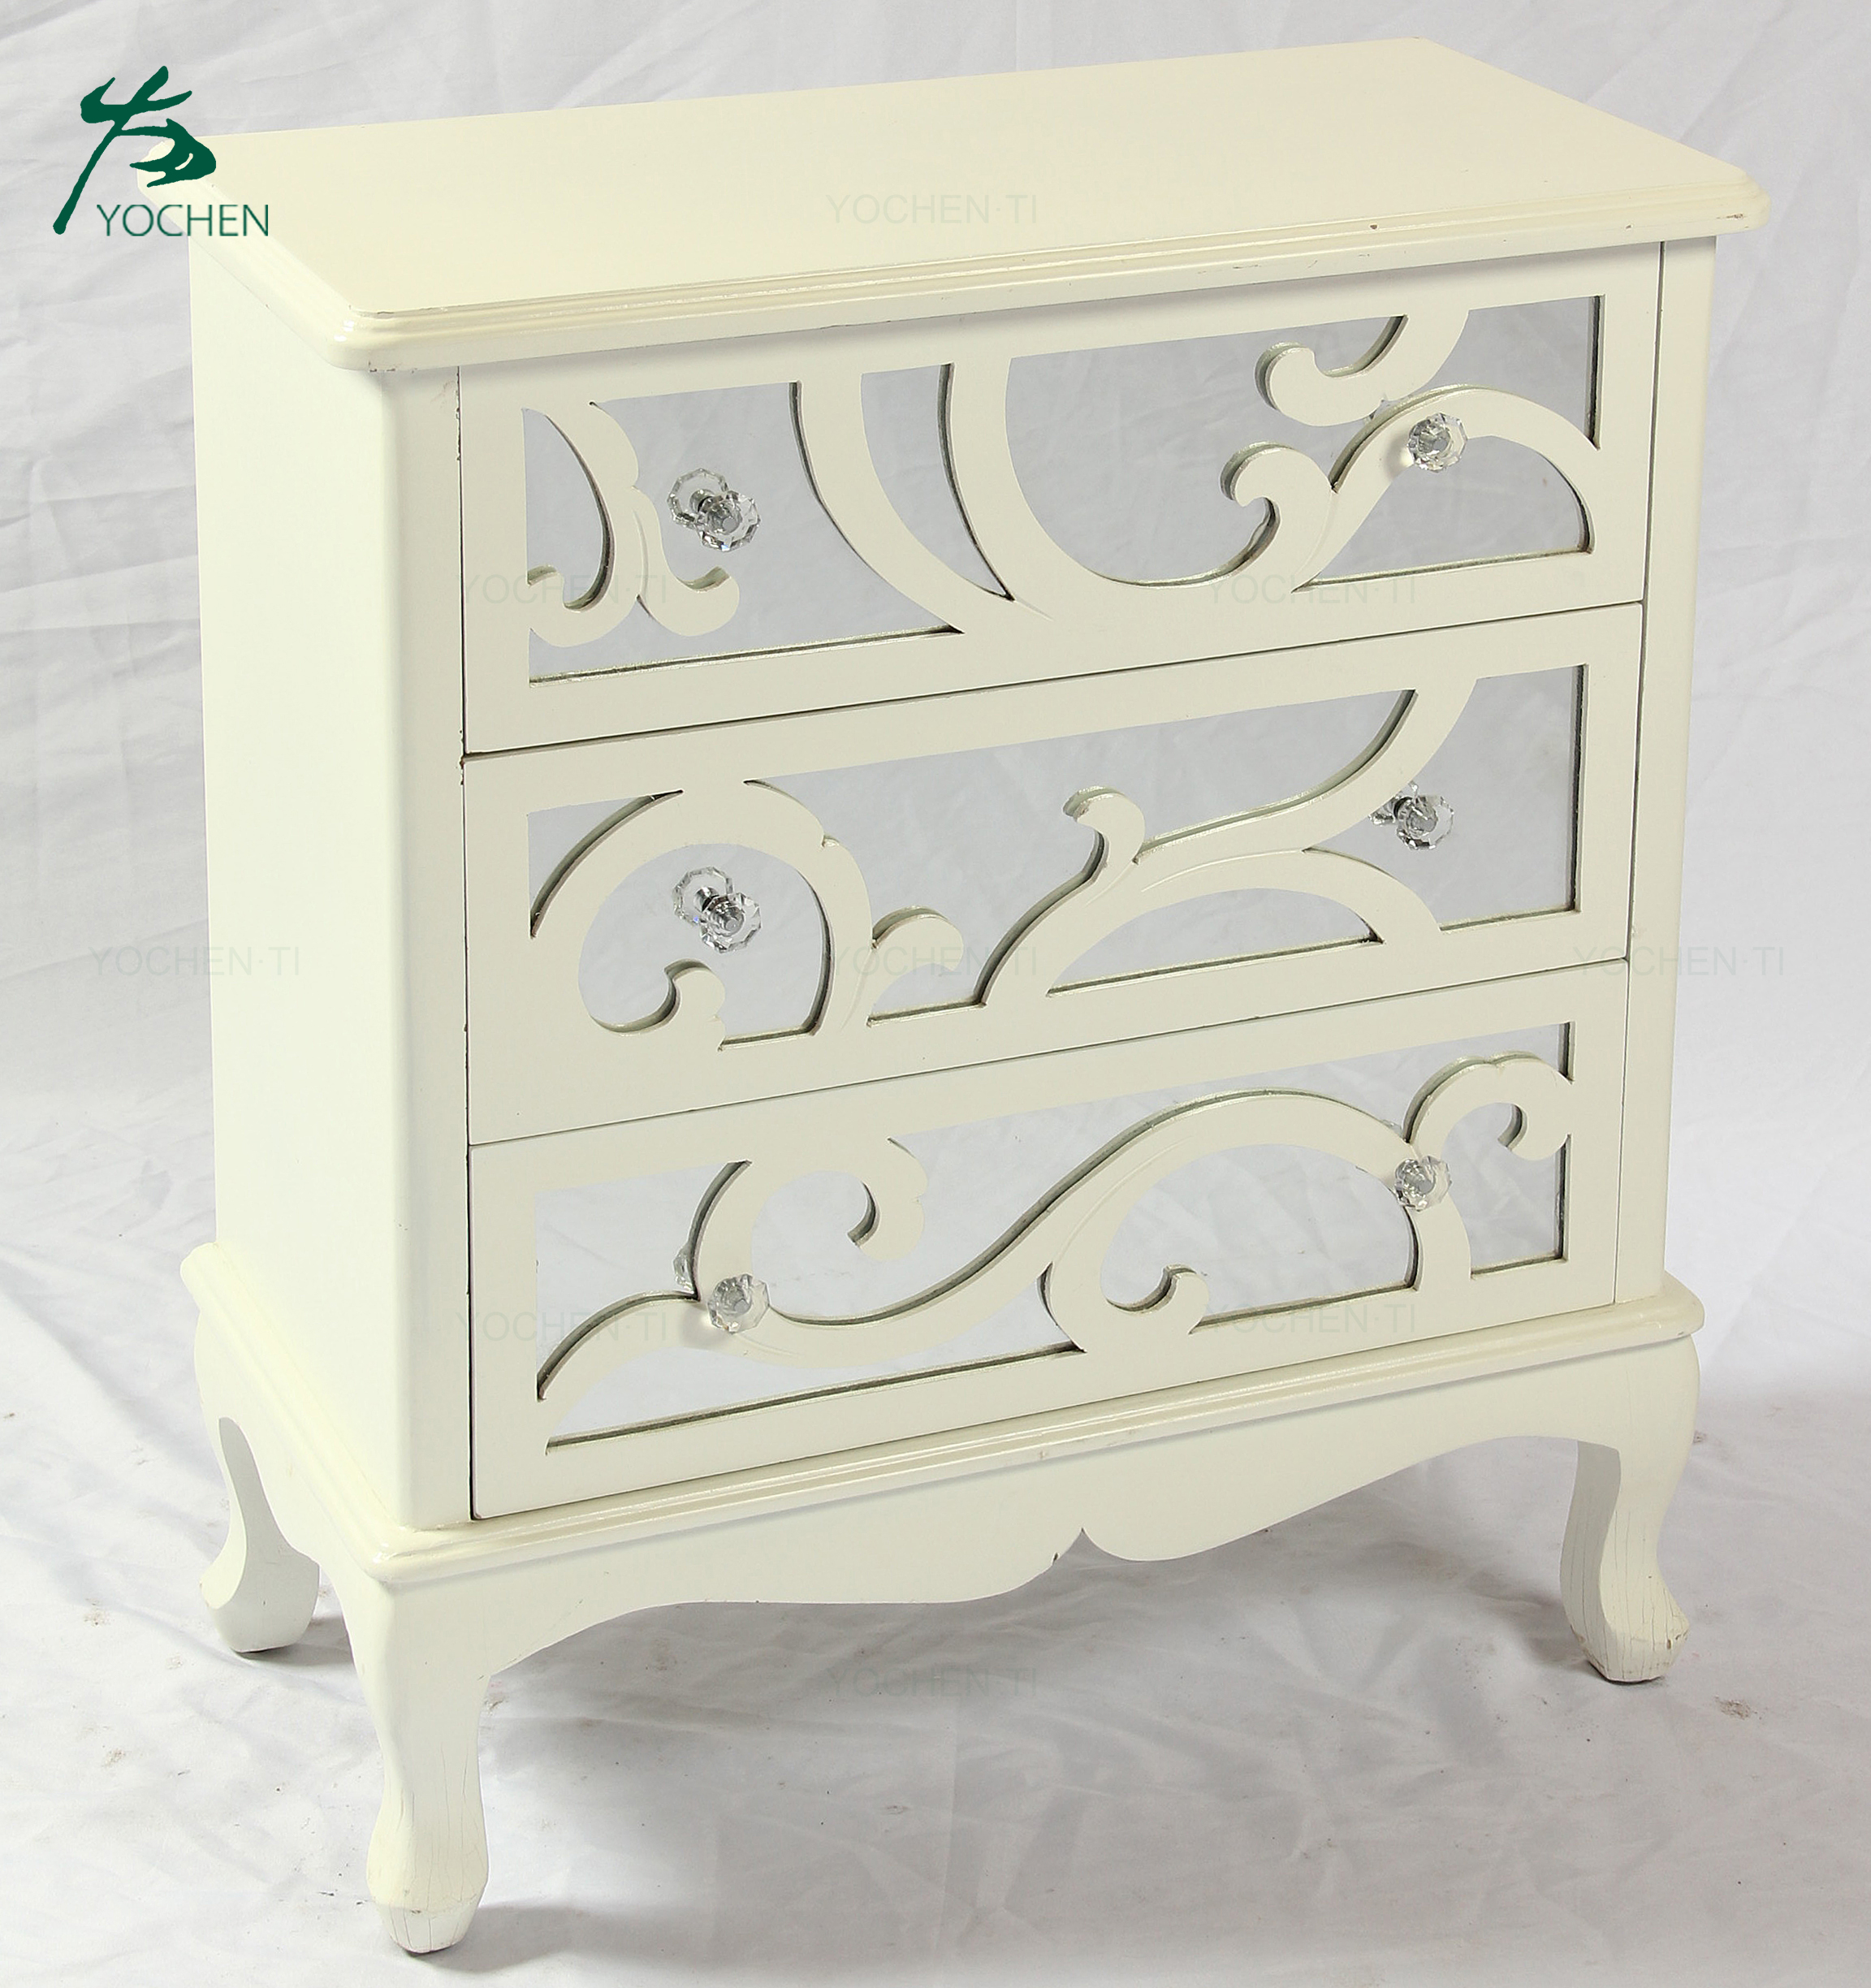 Eco Friendly Antique Mirrored Furniture With Drawers French Style Cabinet